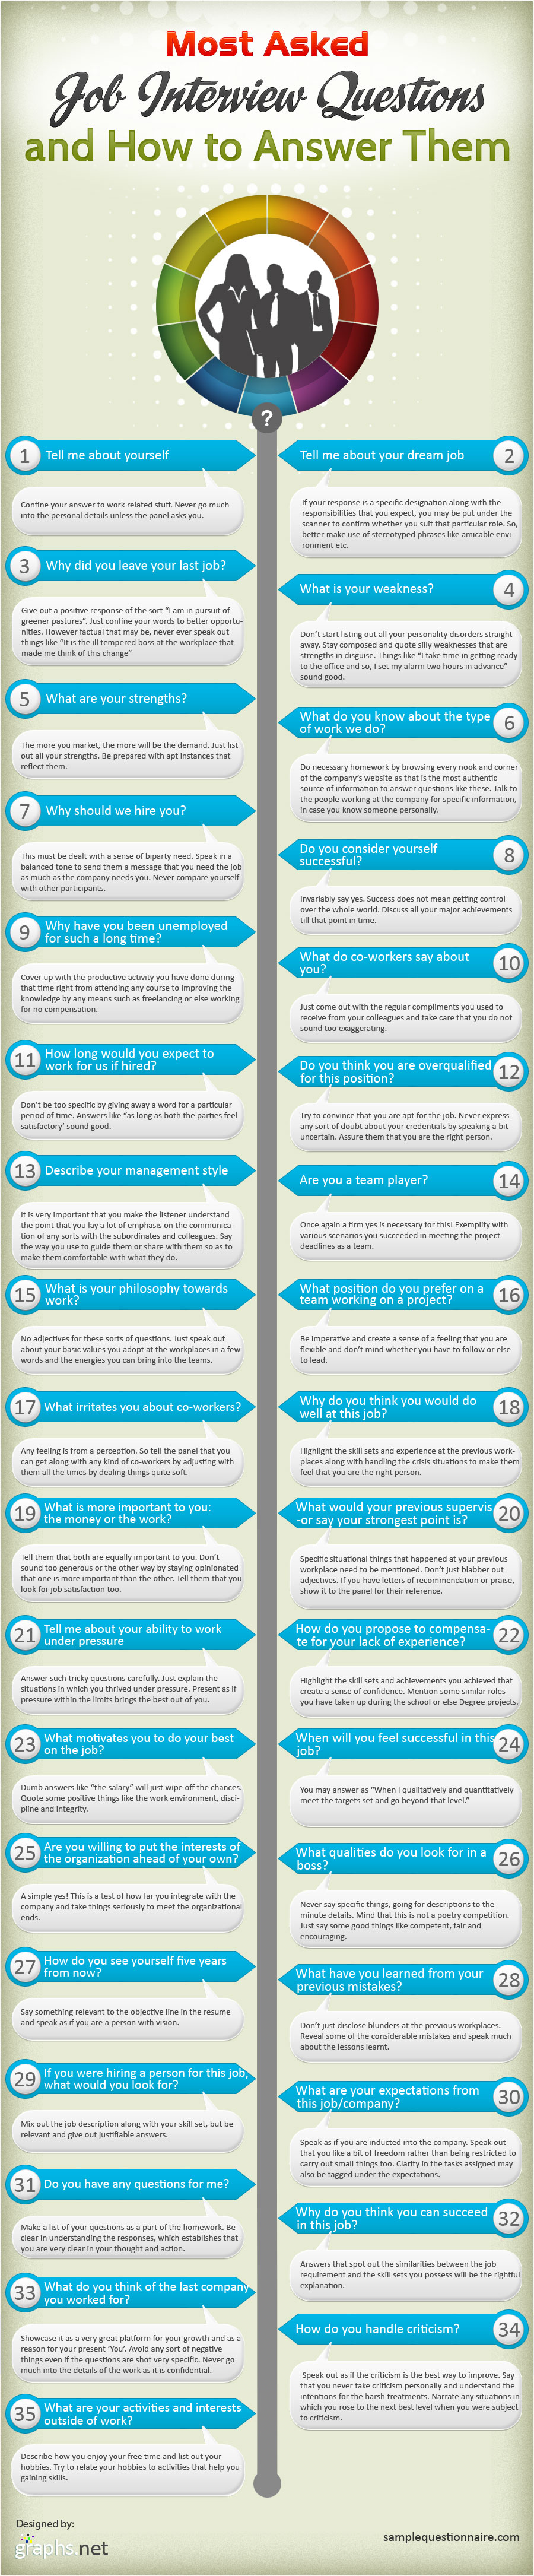 frequently asked job interview questions and their answers